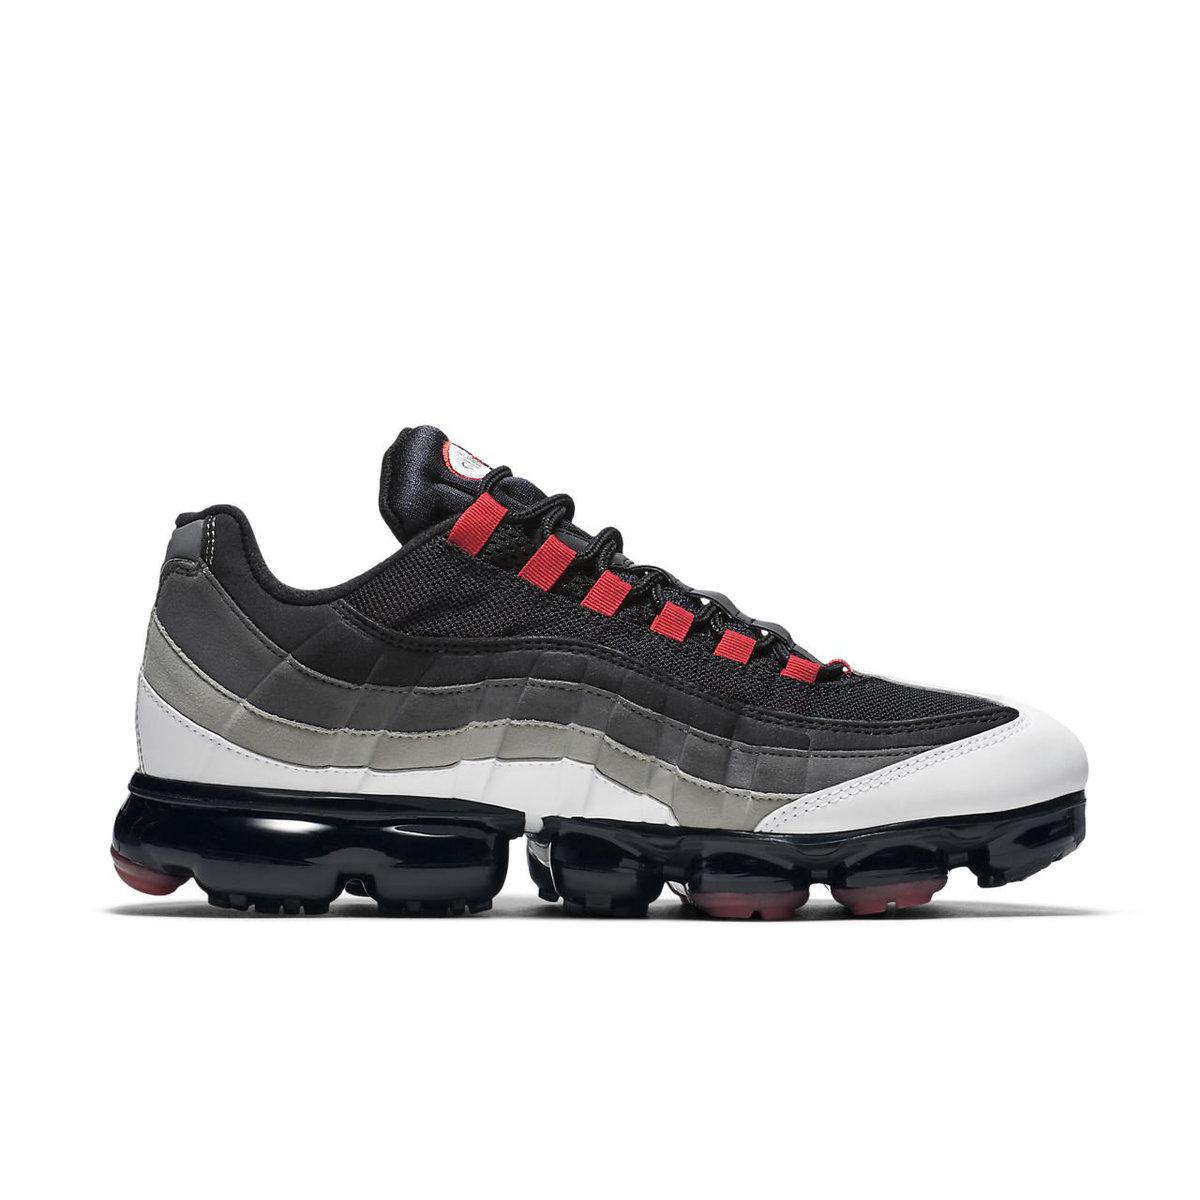 Lyst - Nike Air Vapormax  95 for Men - Save 60% a22203746